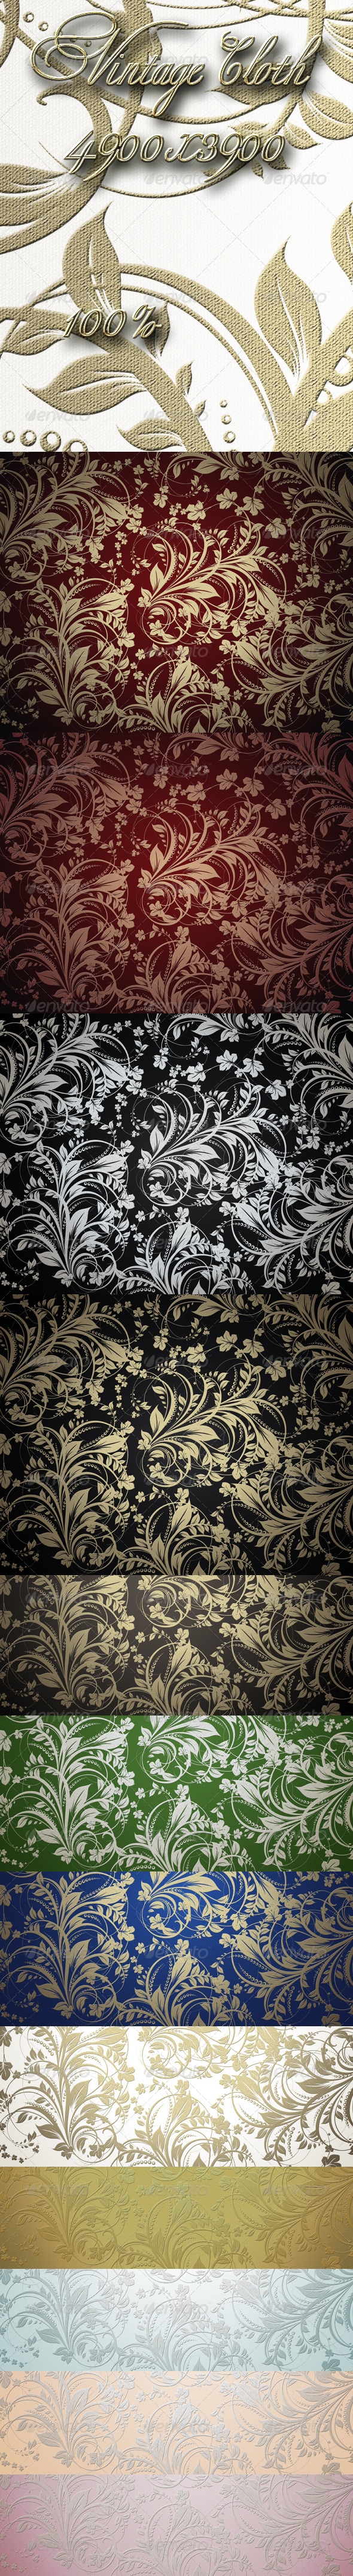 GraphicRiver Vintage Cloth 5591194